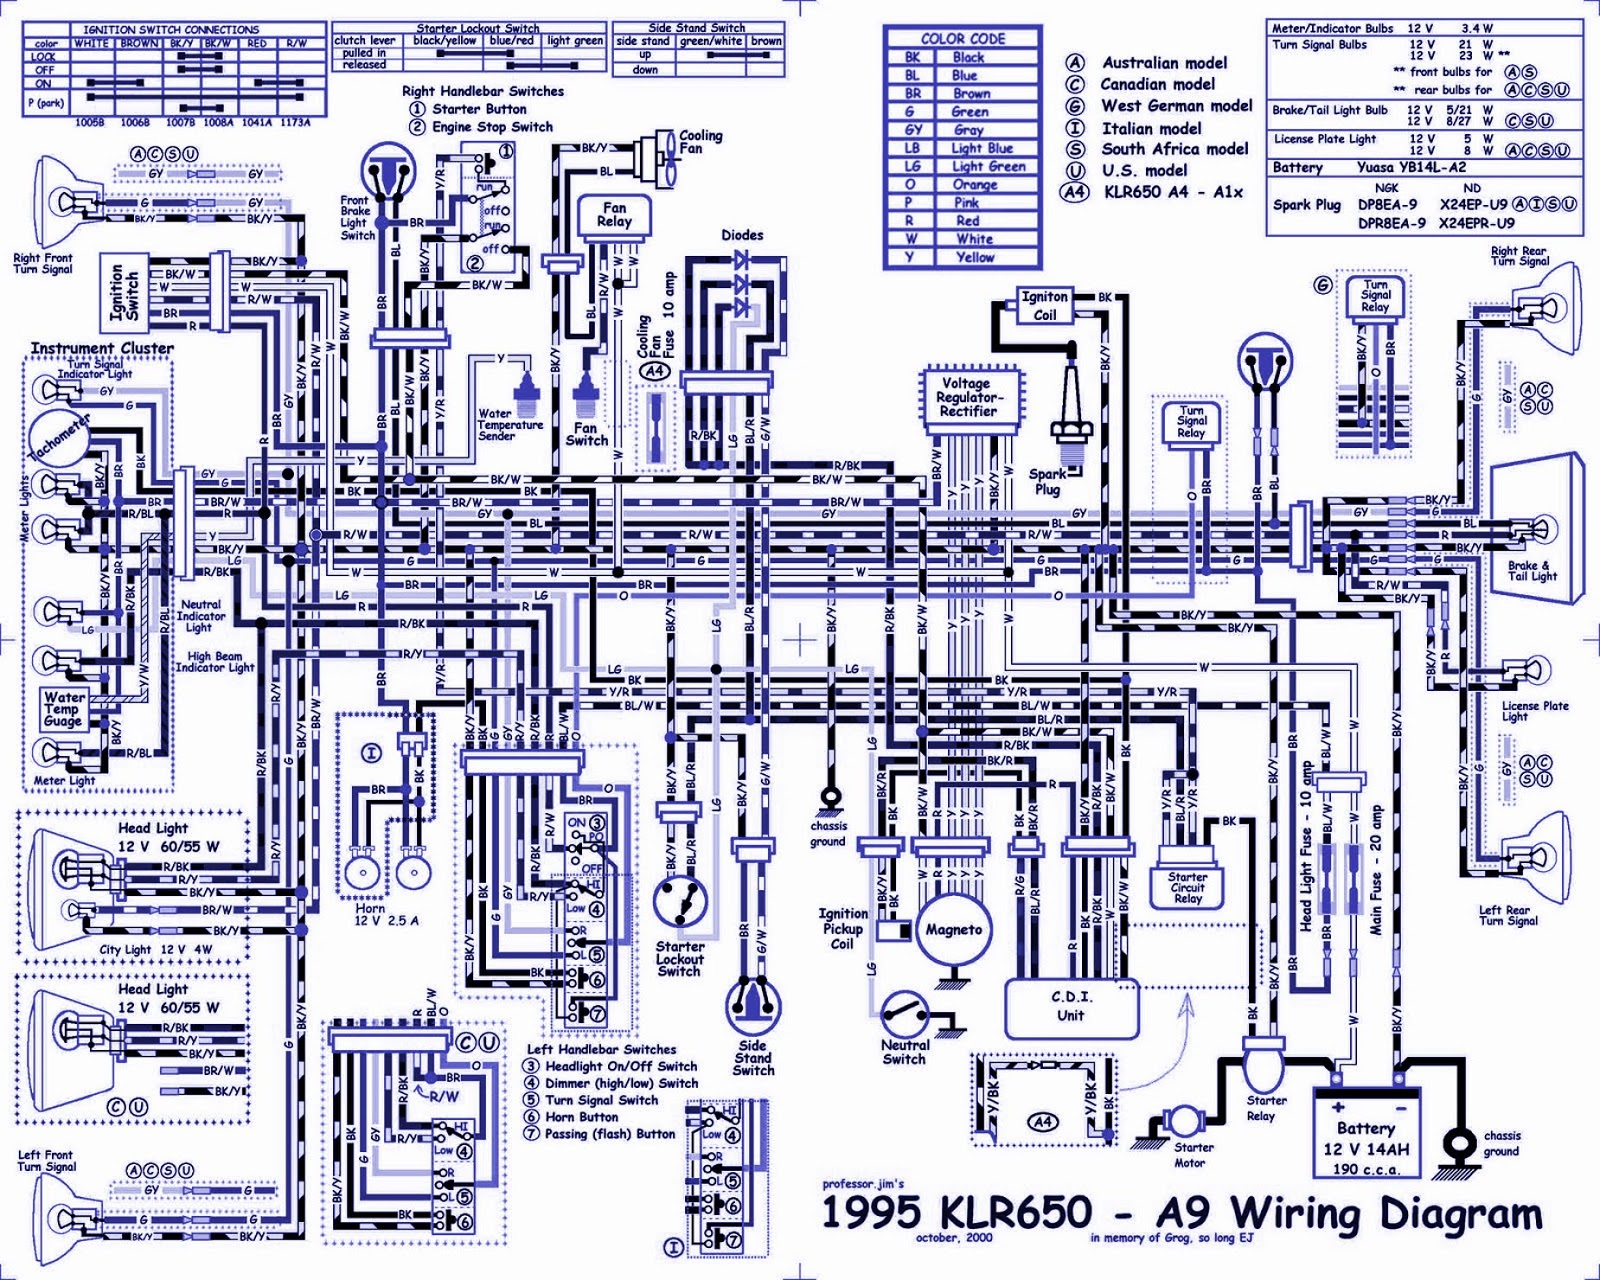 2008 Kymco Wiring Diagram Detailed Schematics Scooter Diagrams Go Septic Value 150cc Chinese